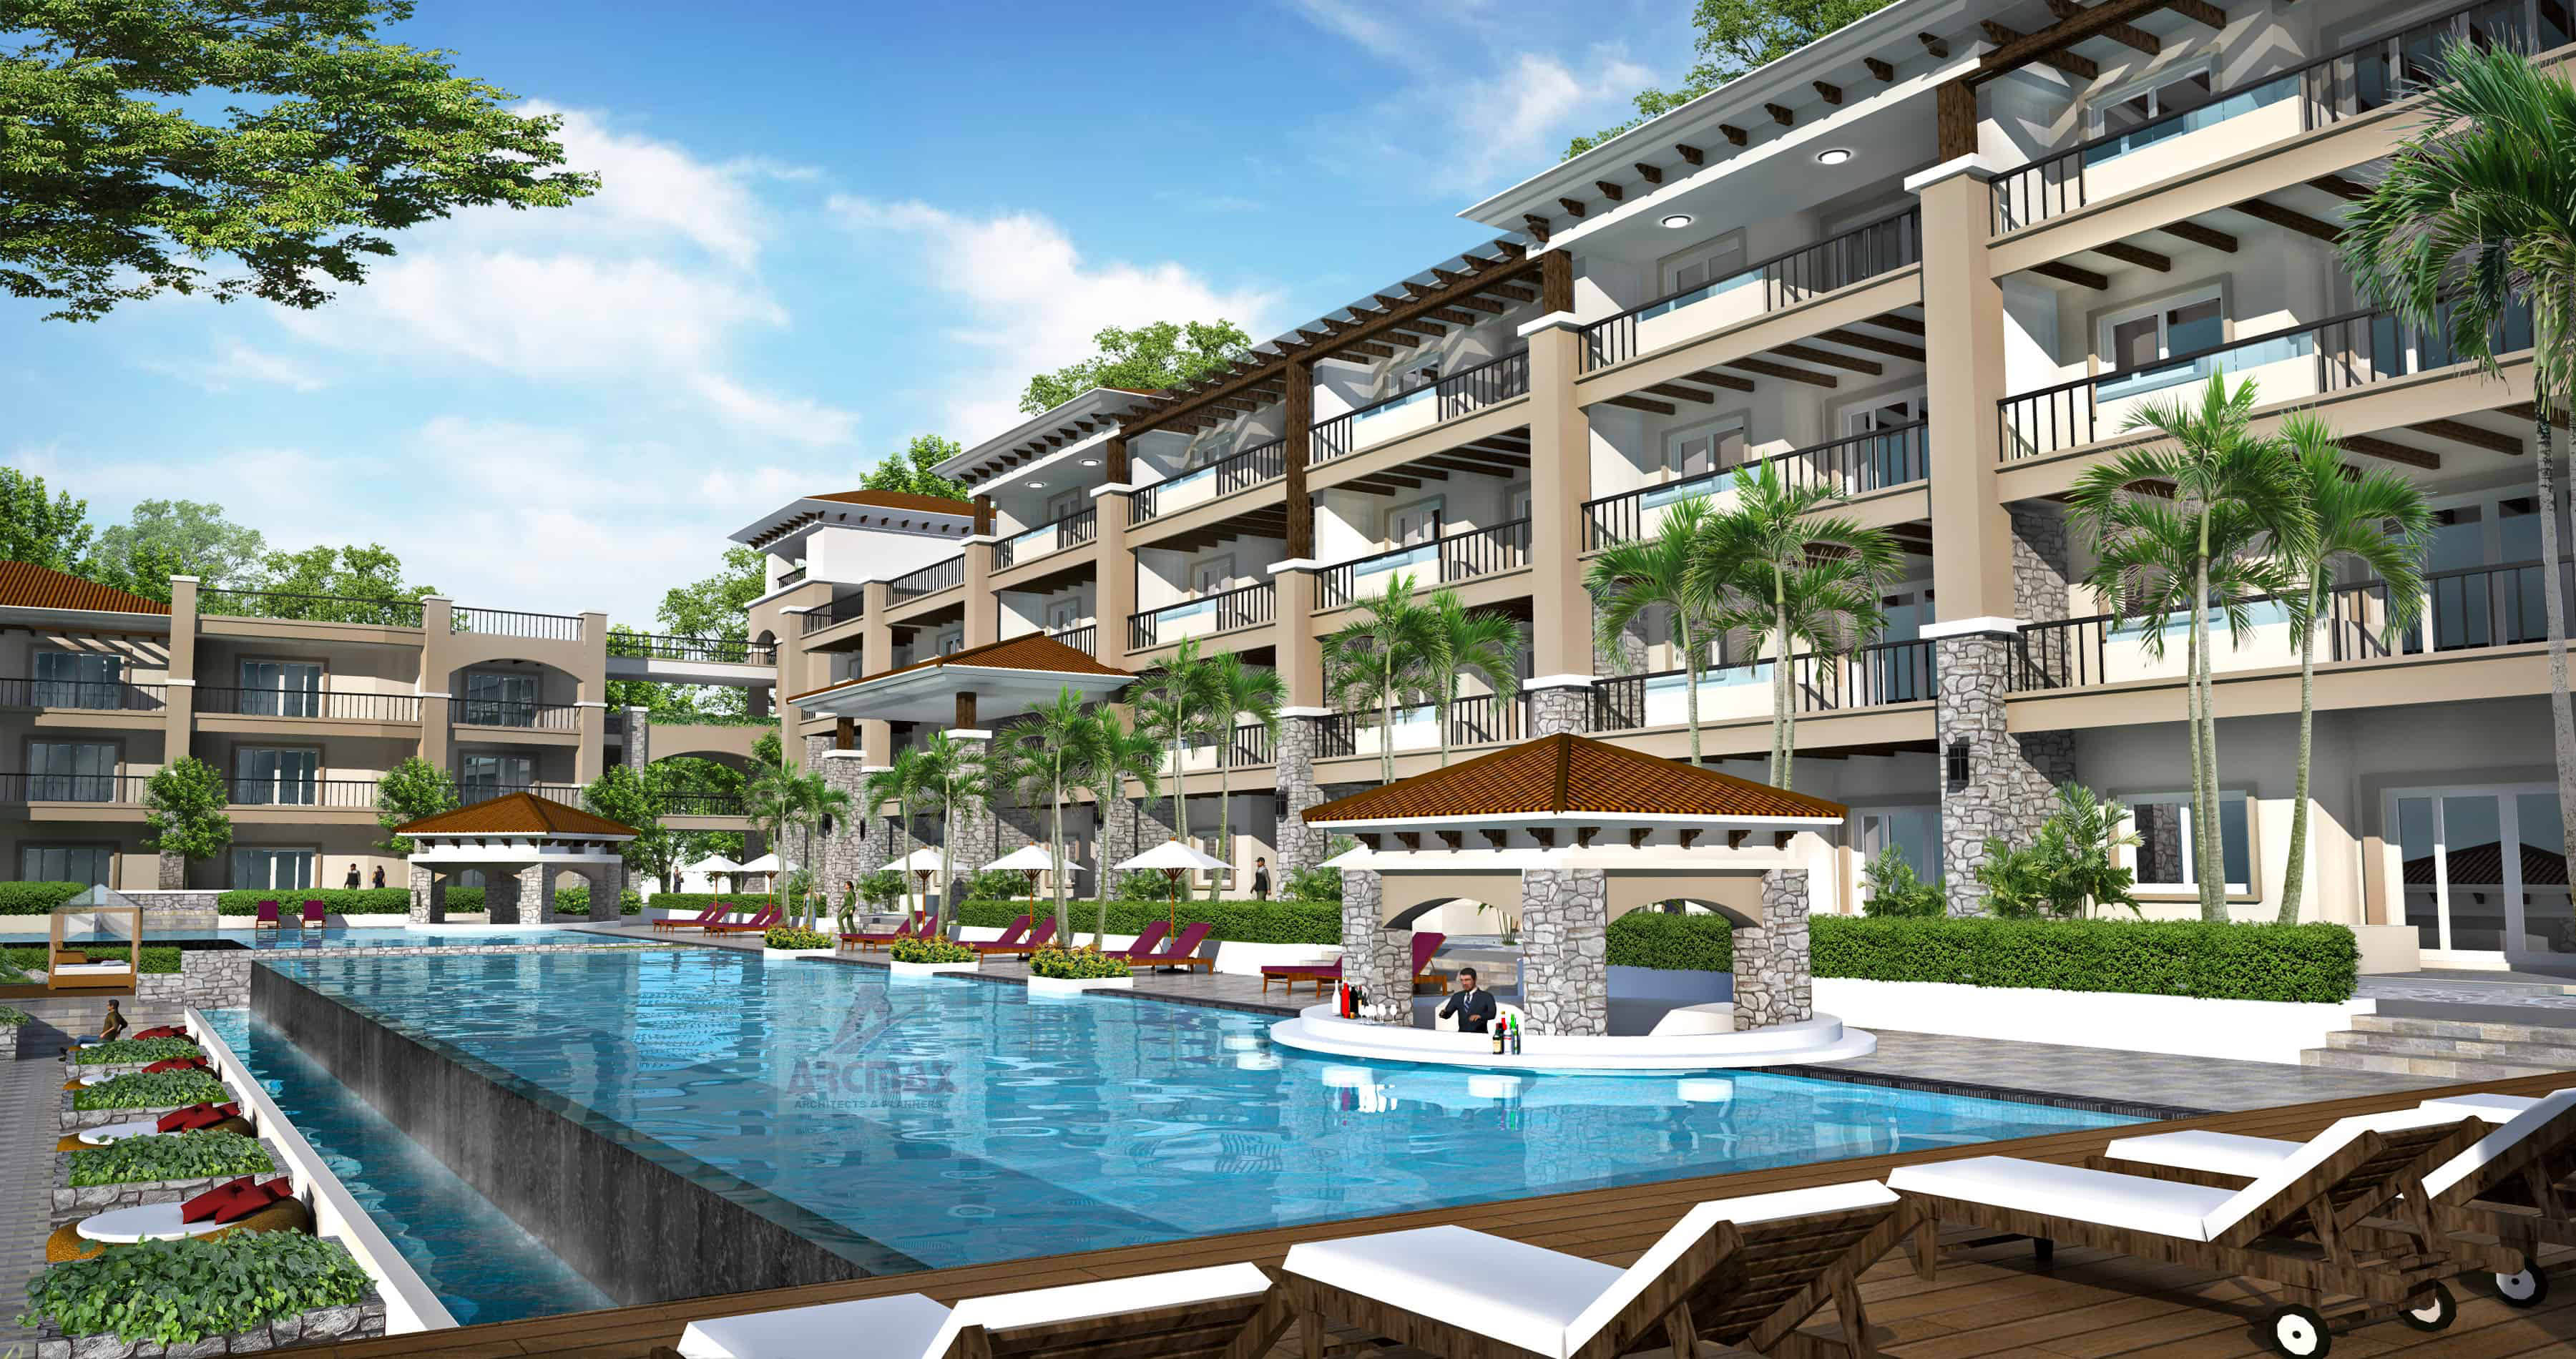 Resort Planning & Design Plans - ArcMax Architects & Planners